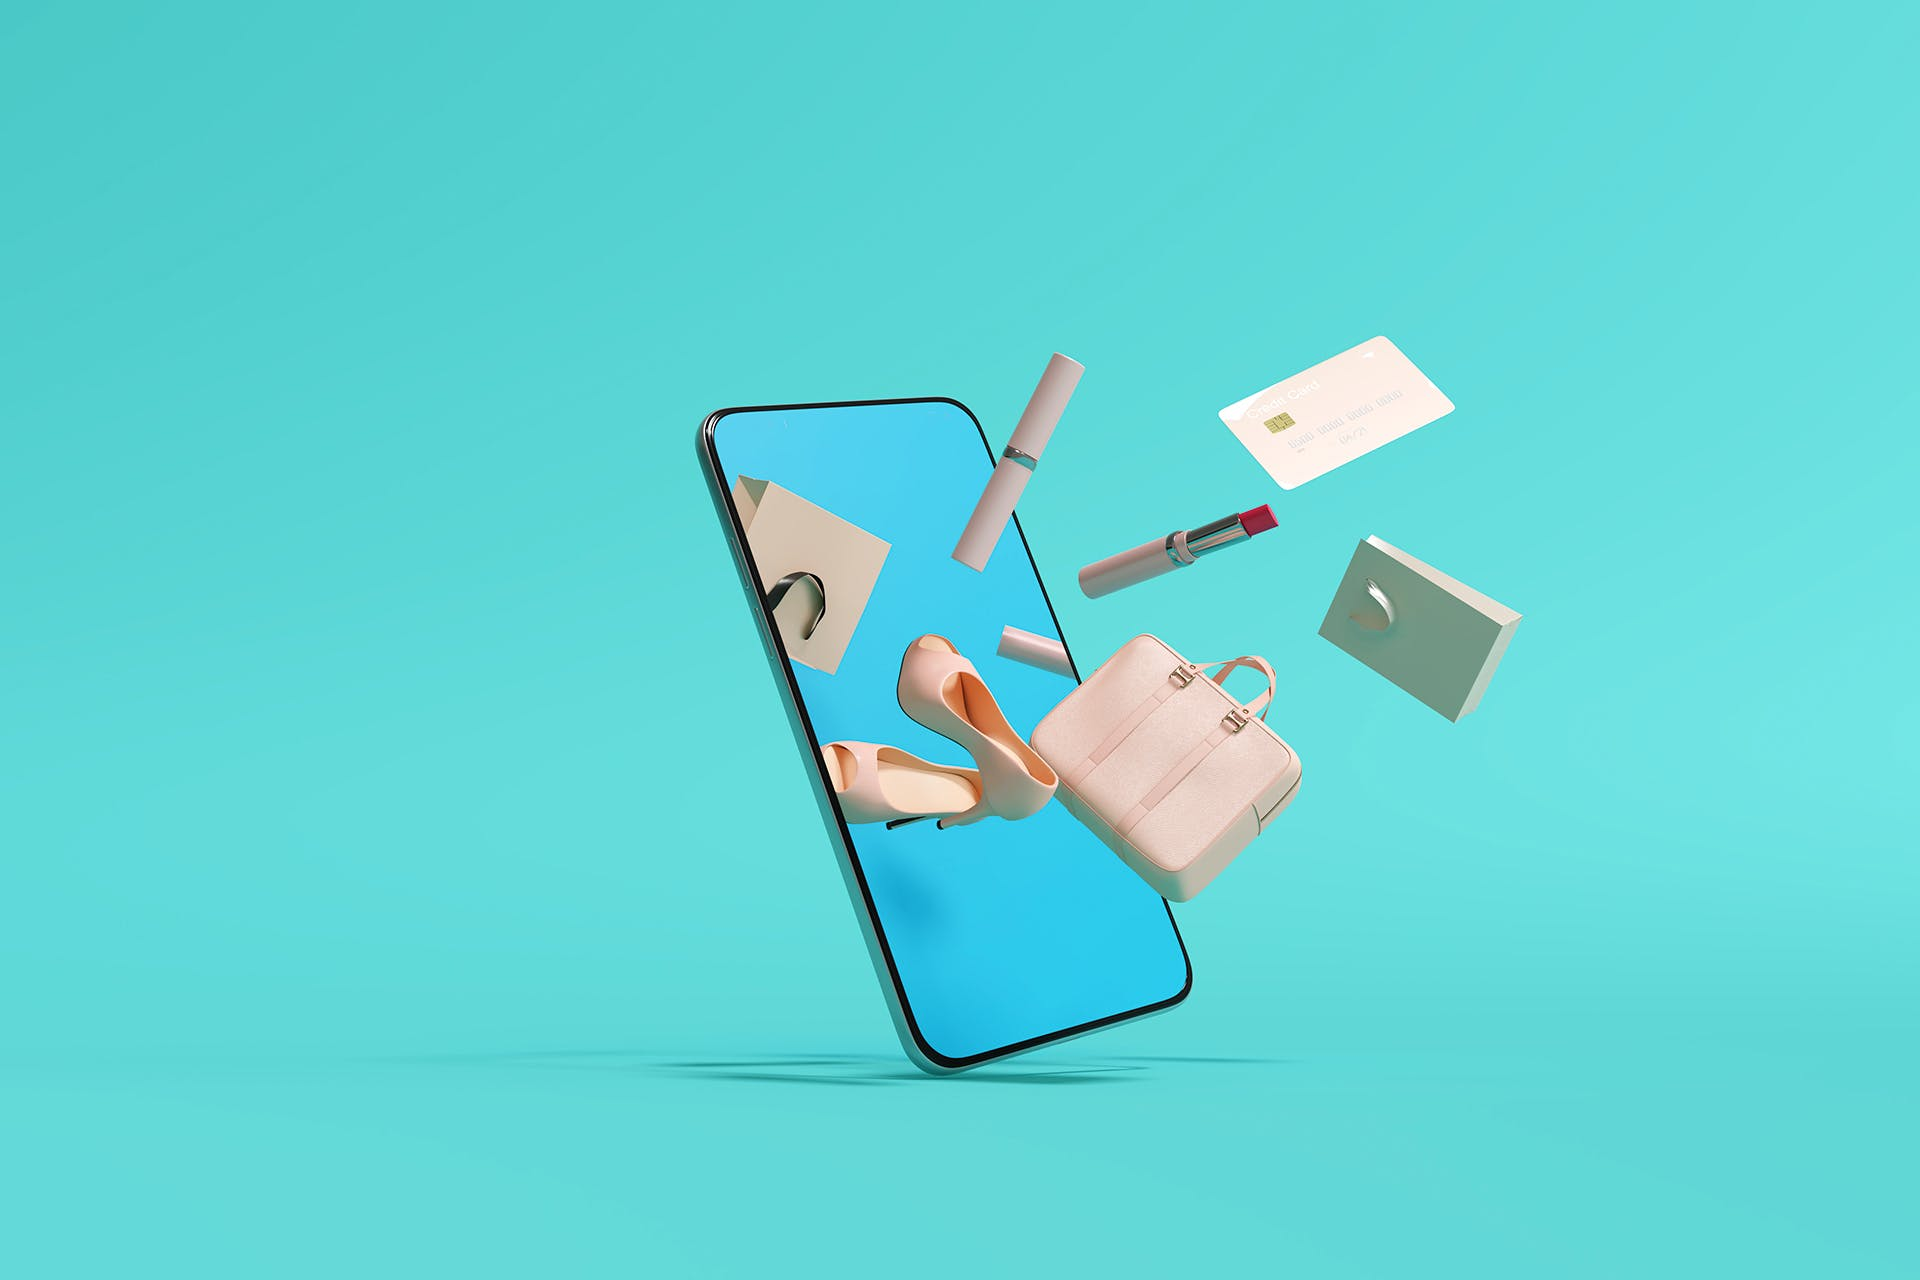 A smartphone that has various objects like a pair of shoes, a suitcase, a credit card, and lipstick all flying out of the screen and into the real world. This image illustrates the growing shift toward online shopping, and in particular social commerce through platforms like Facebook Marketplace.